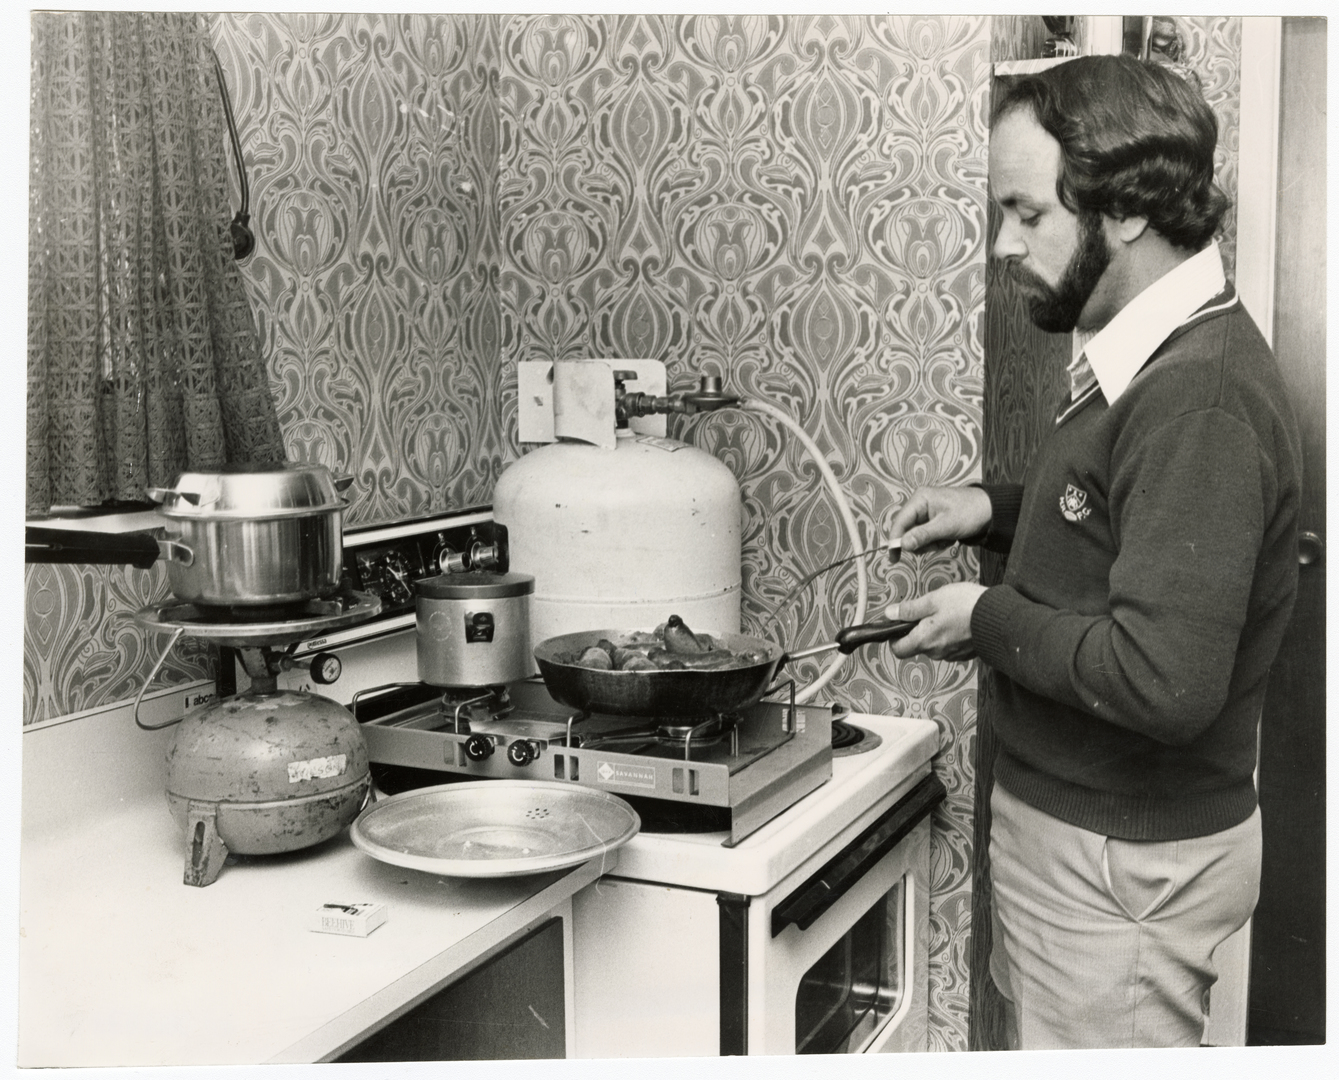 Man cooking without power